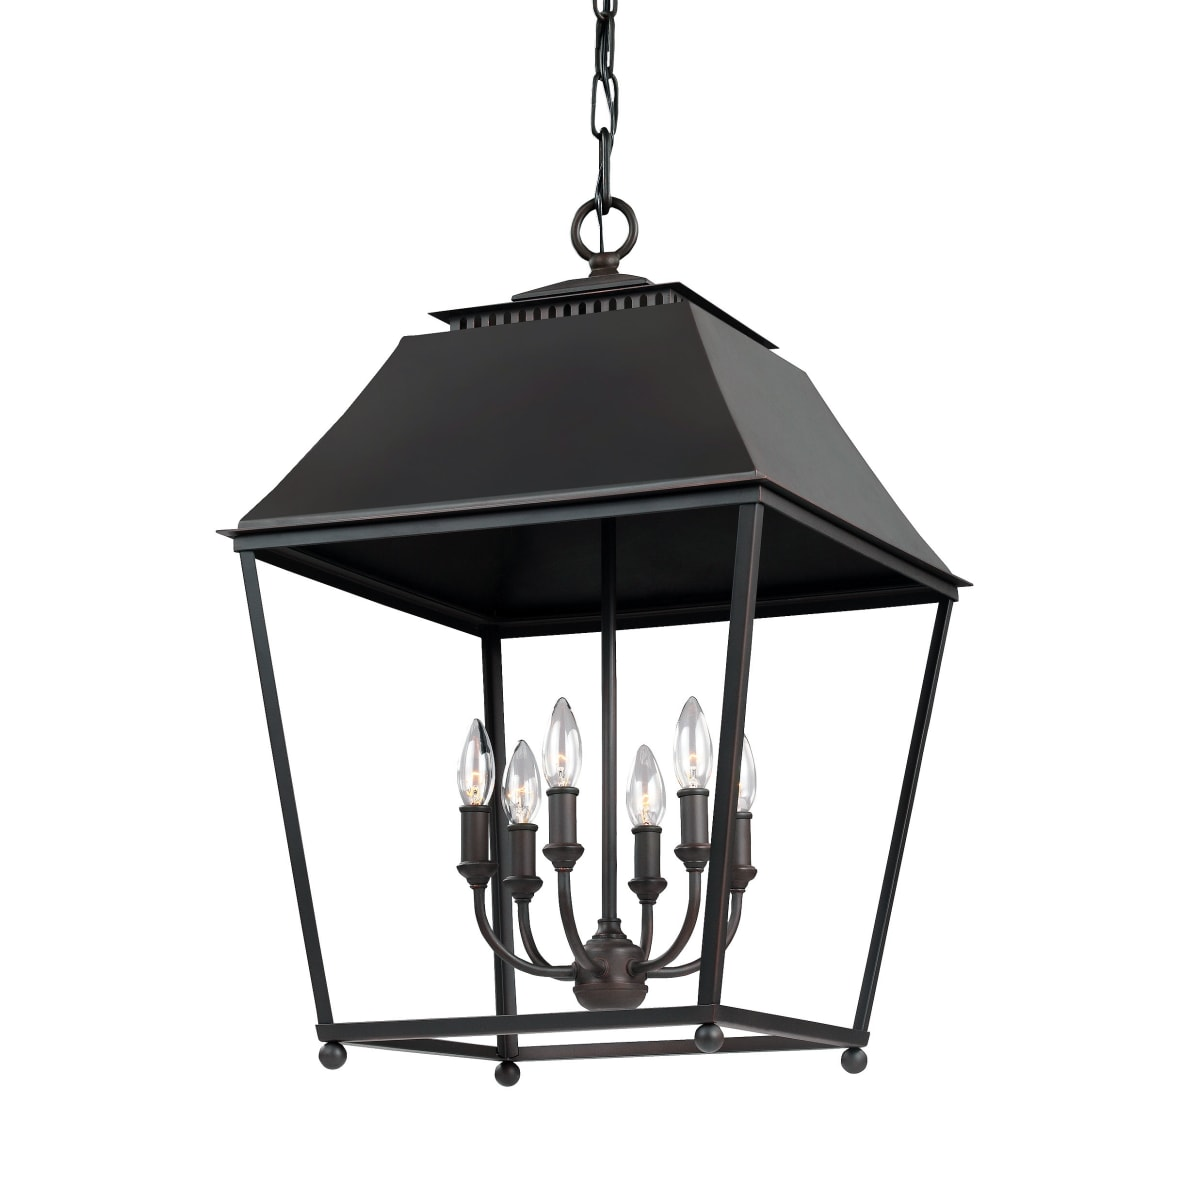 What a gorgeous oversized hanging lantern chandelier from Feiss (Galloway)  for a French farmhouse kitchen or dining room!